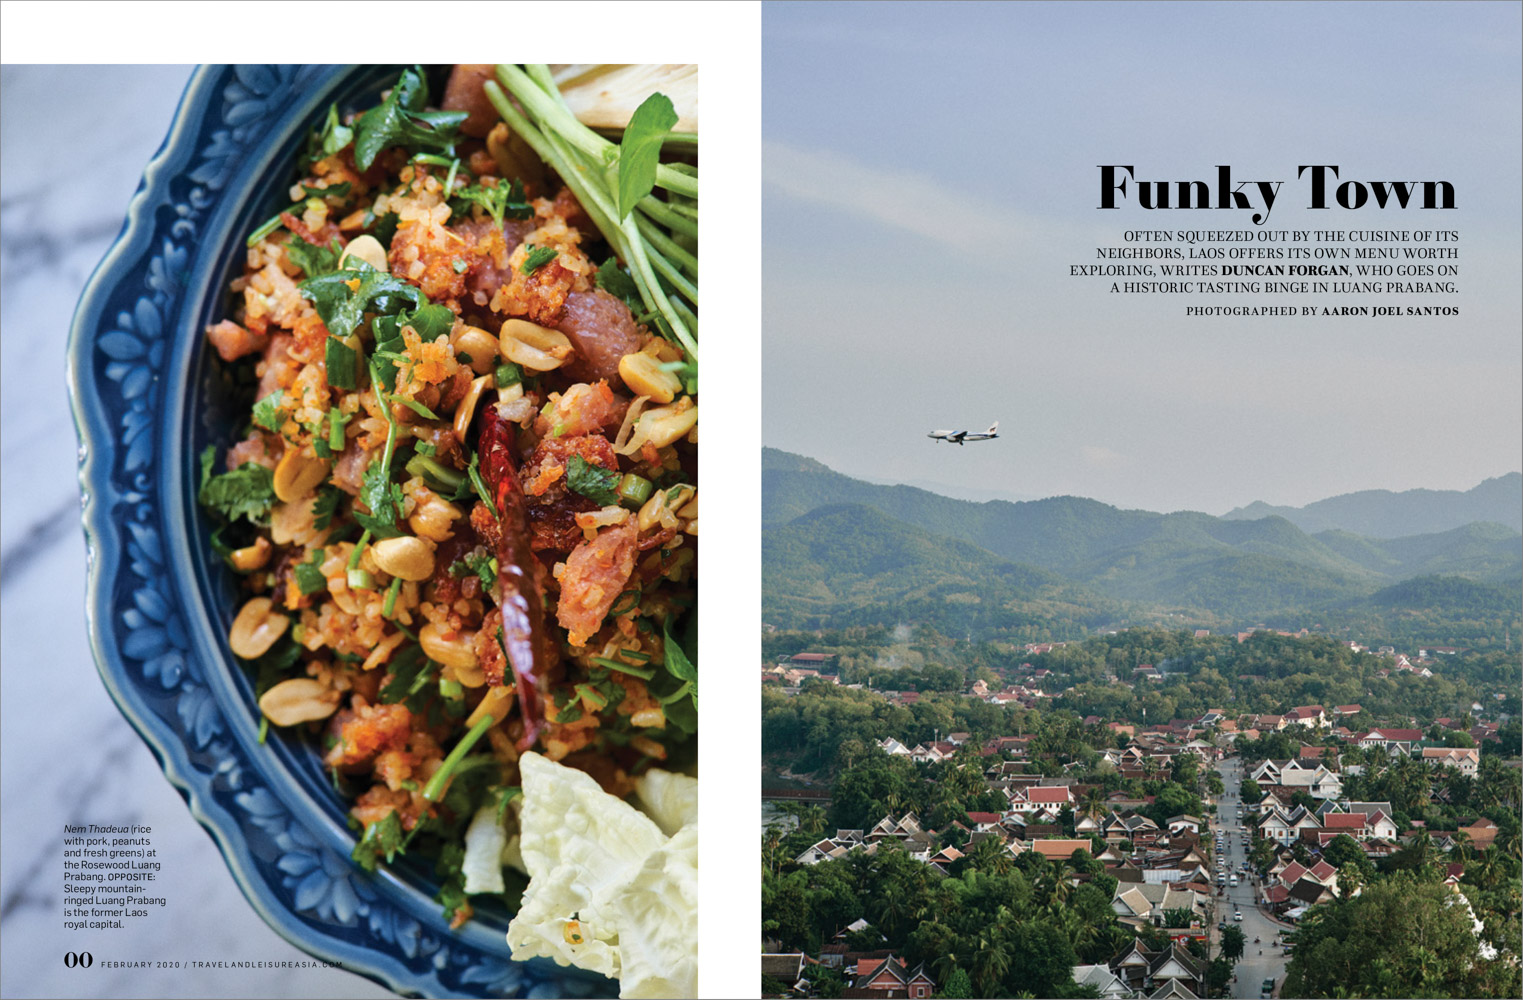 From a travel story on Laotian cuisine in Luang Prabang.